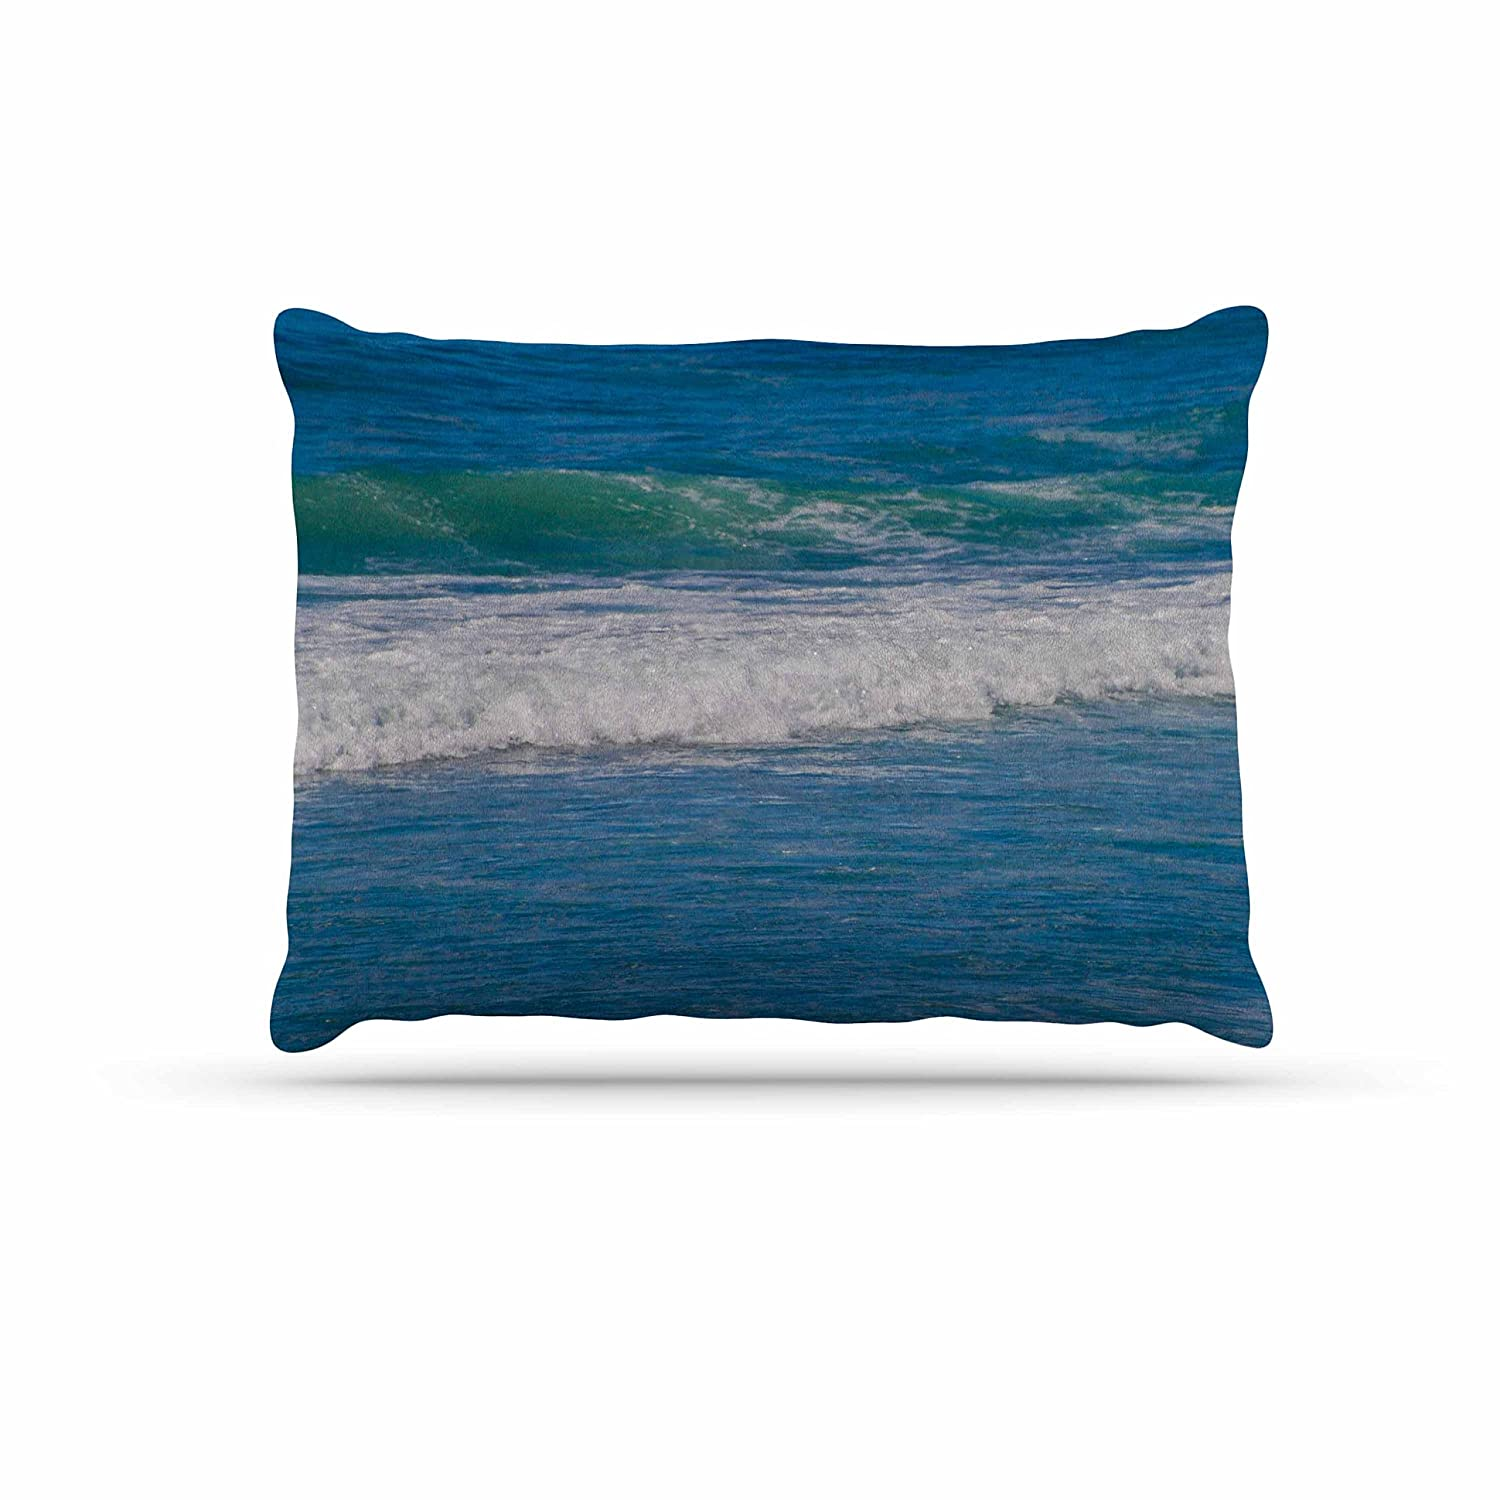 Kess InHouse Nick Nareshni Solana Beach Rolling Waves  bluee Coastal Fleece Dog Bed, 30 by 40